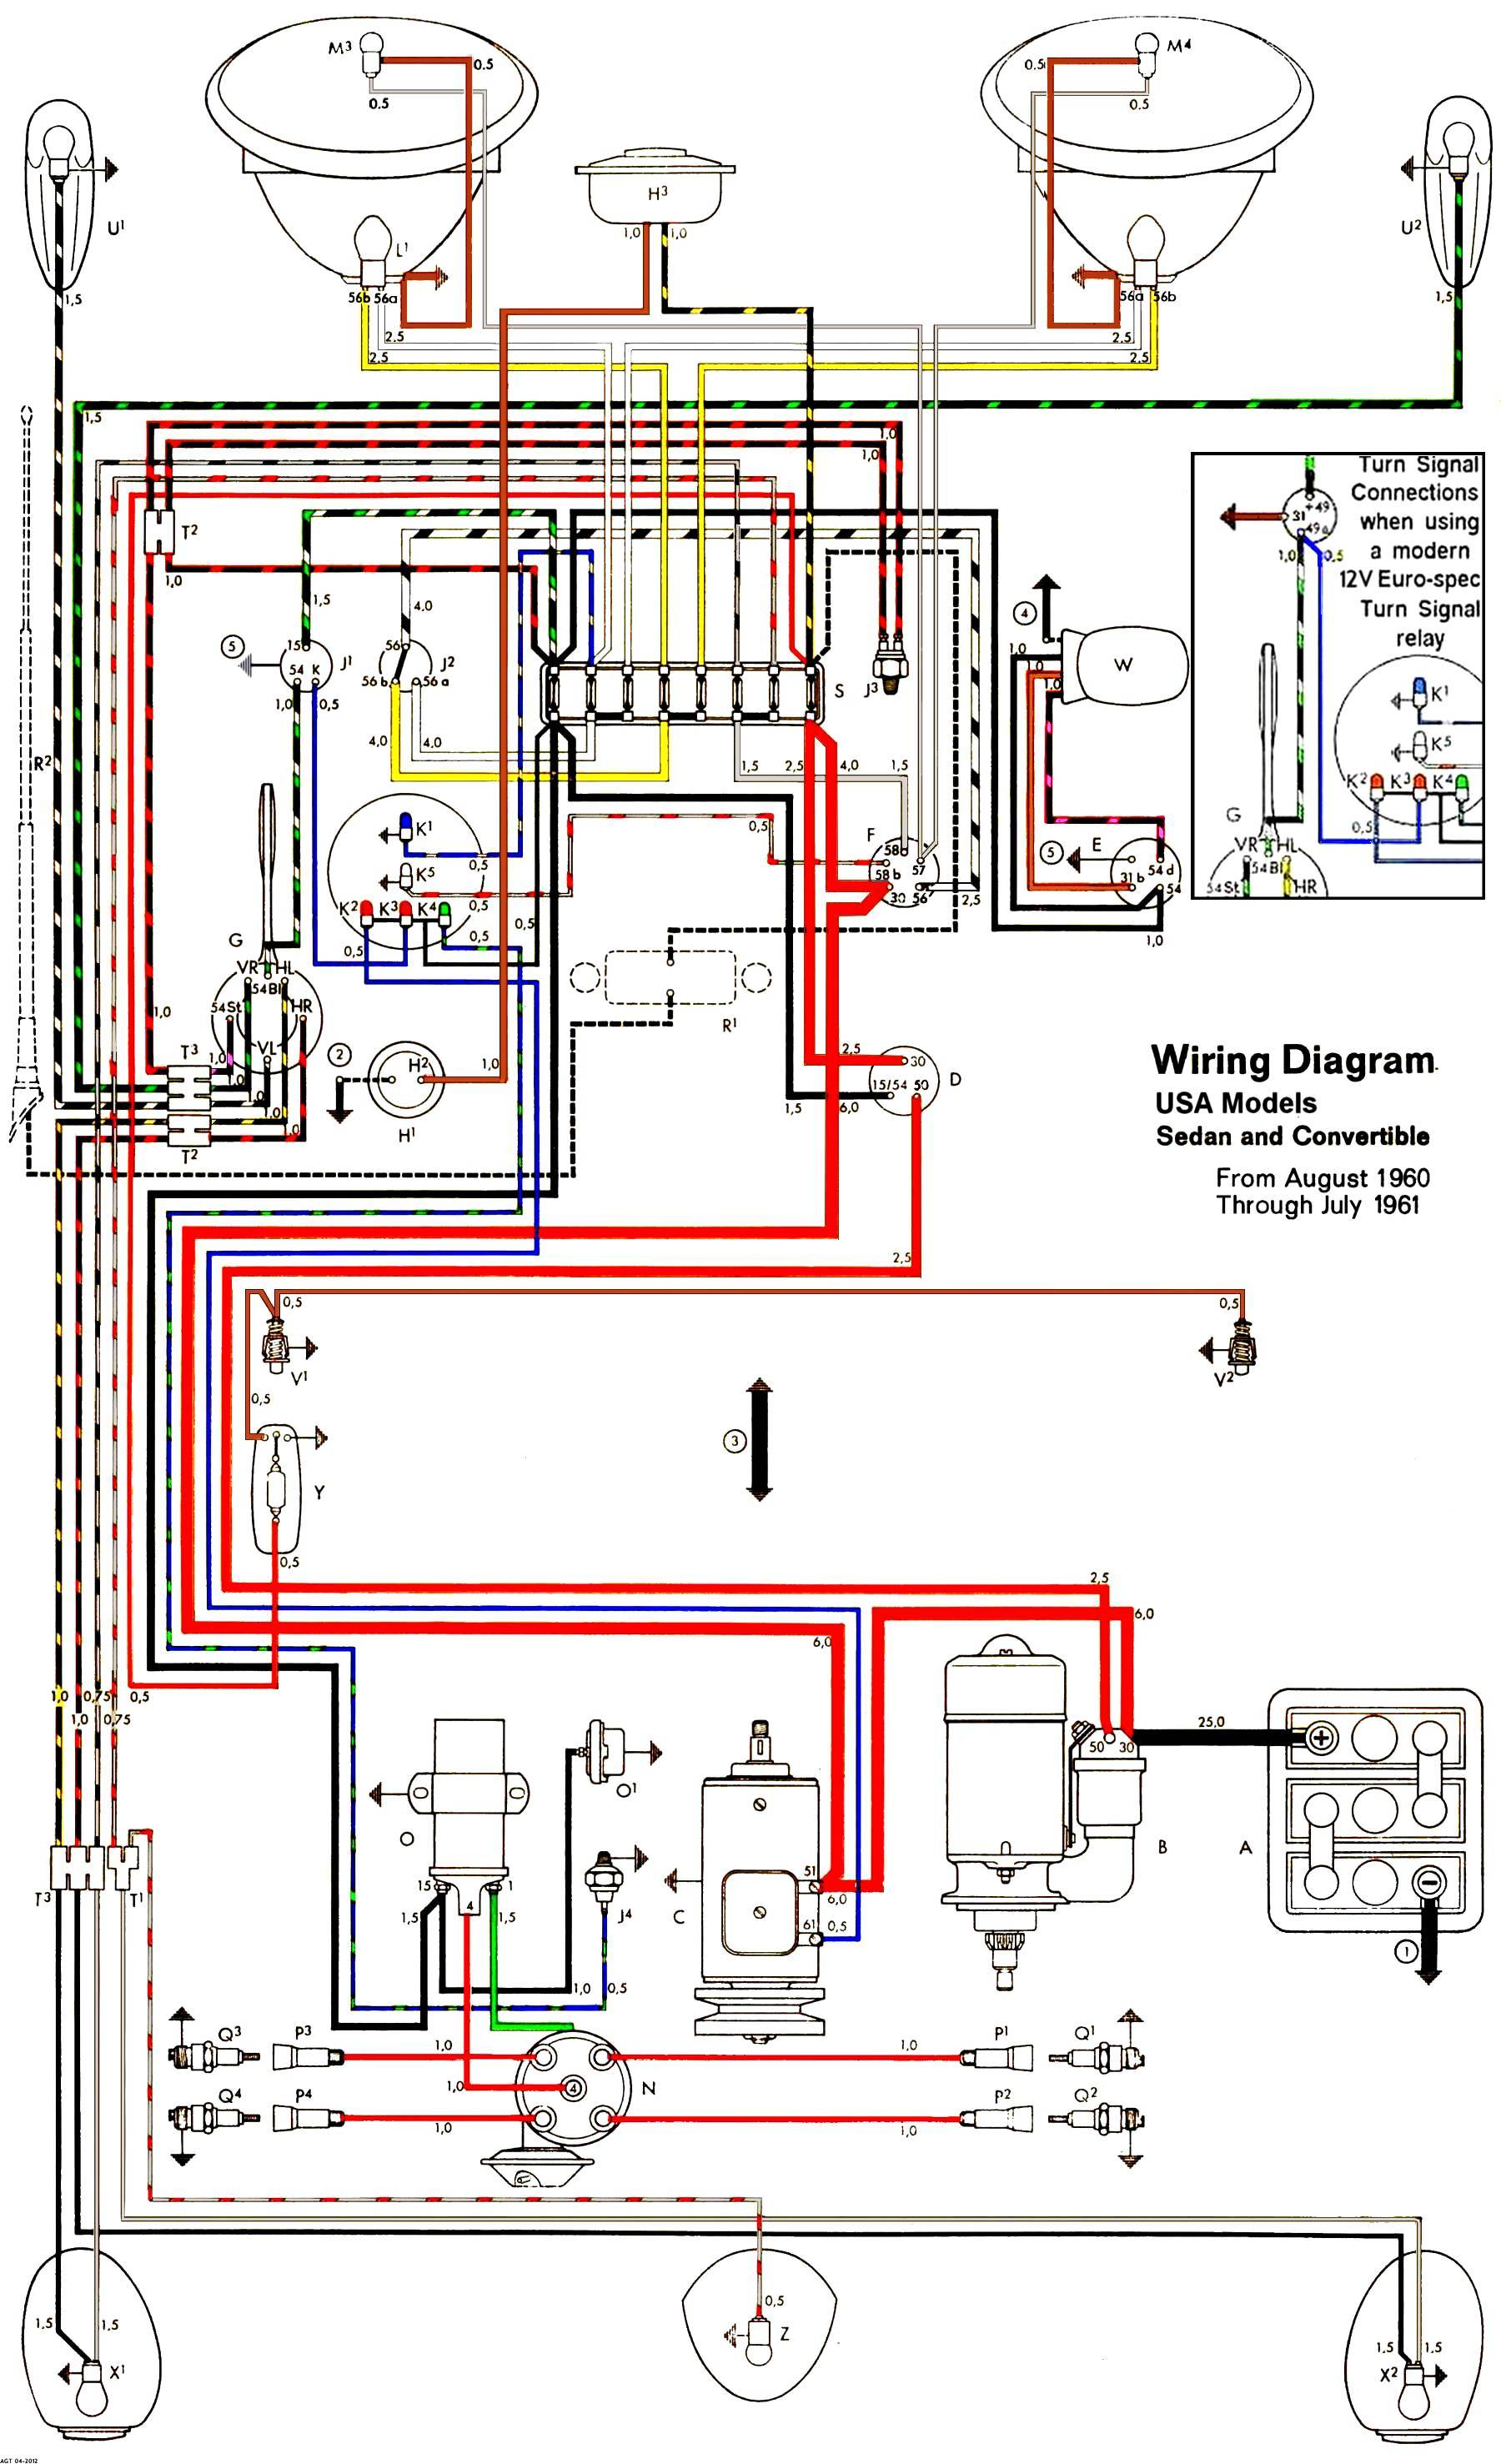 75 Beetle Wiring Diagram Layout Diagrams 2003 New Fuse Images Gallery